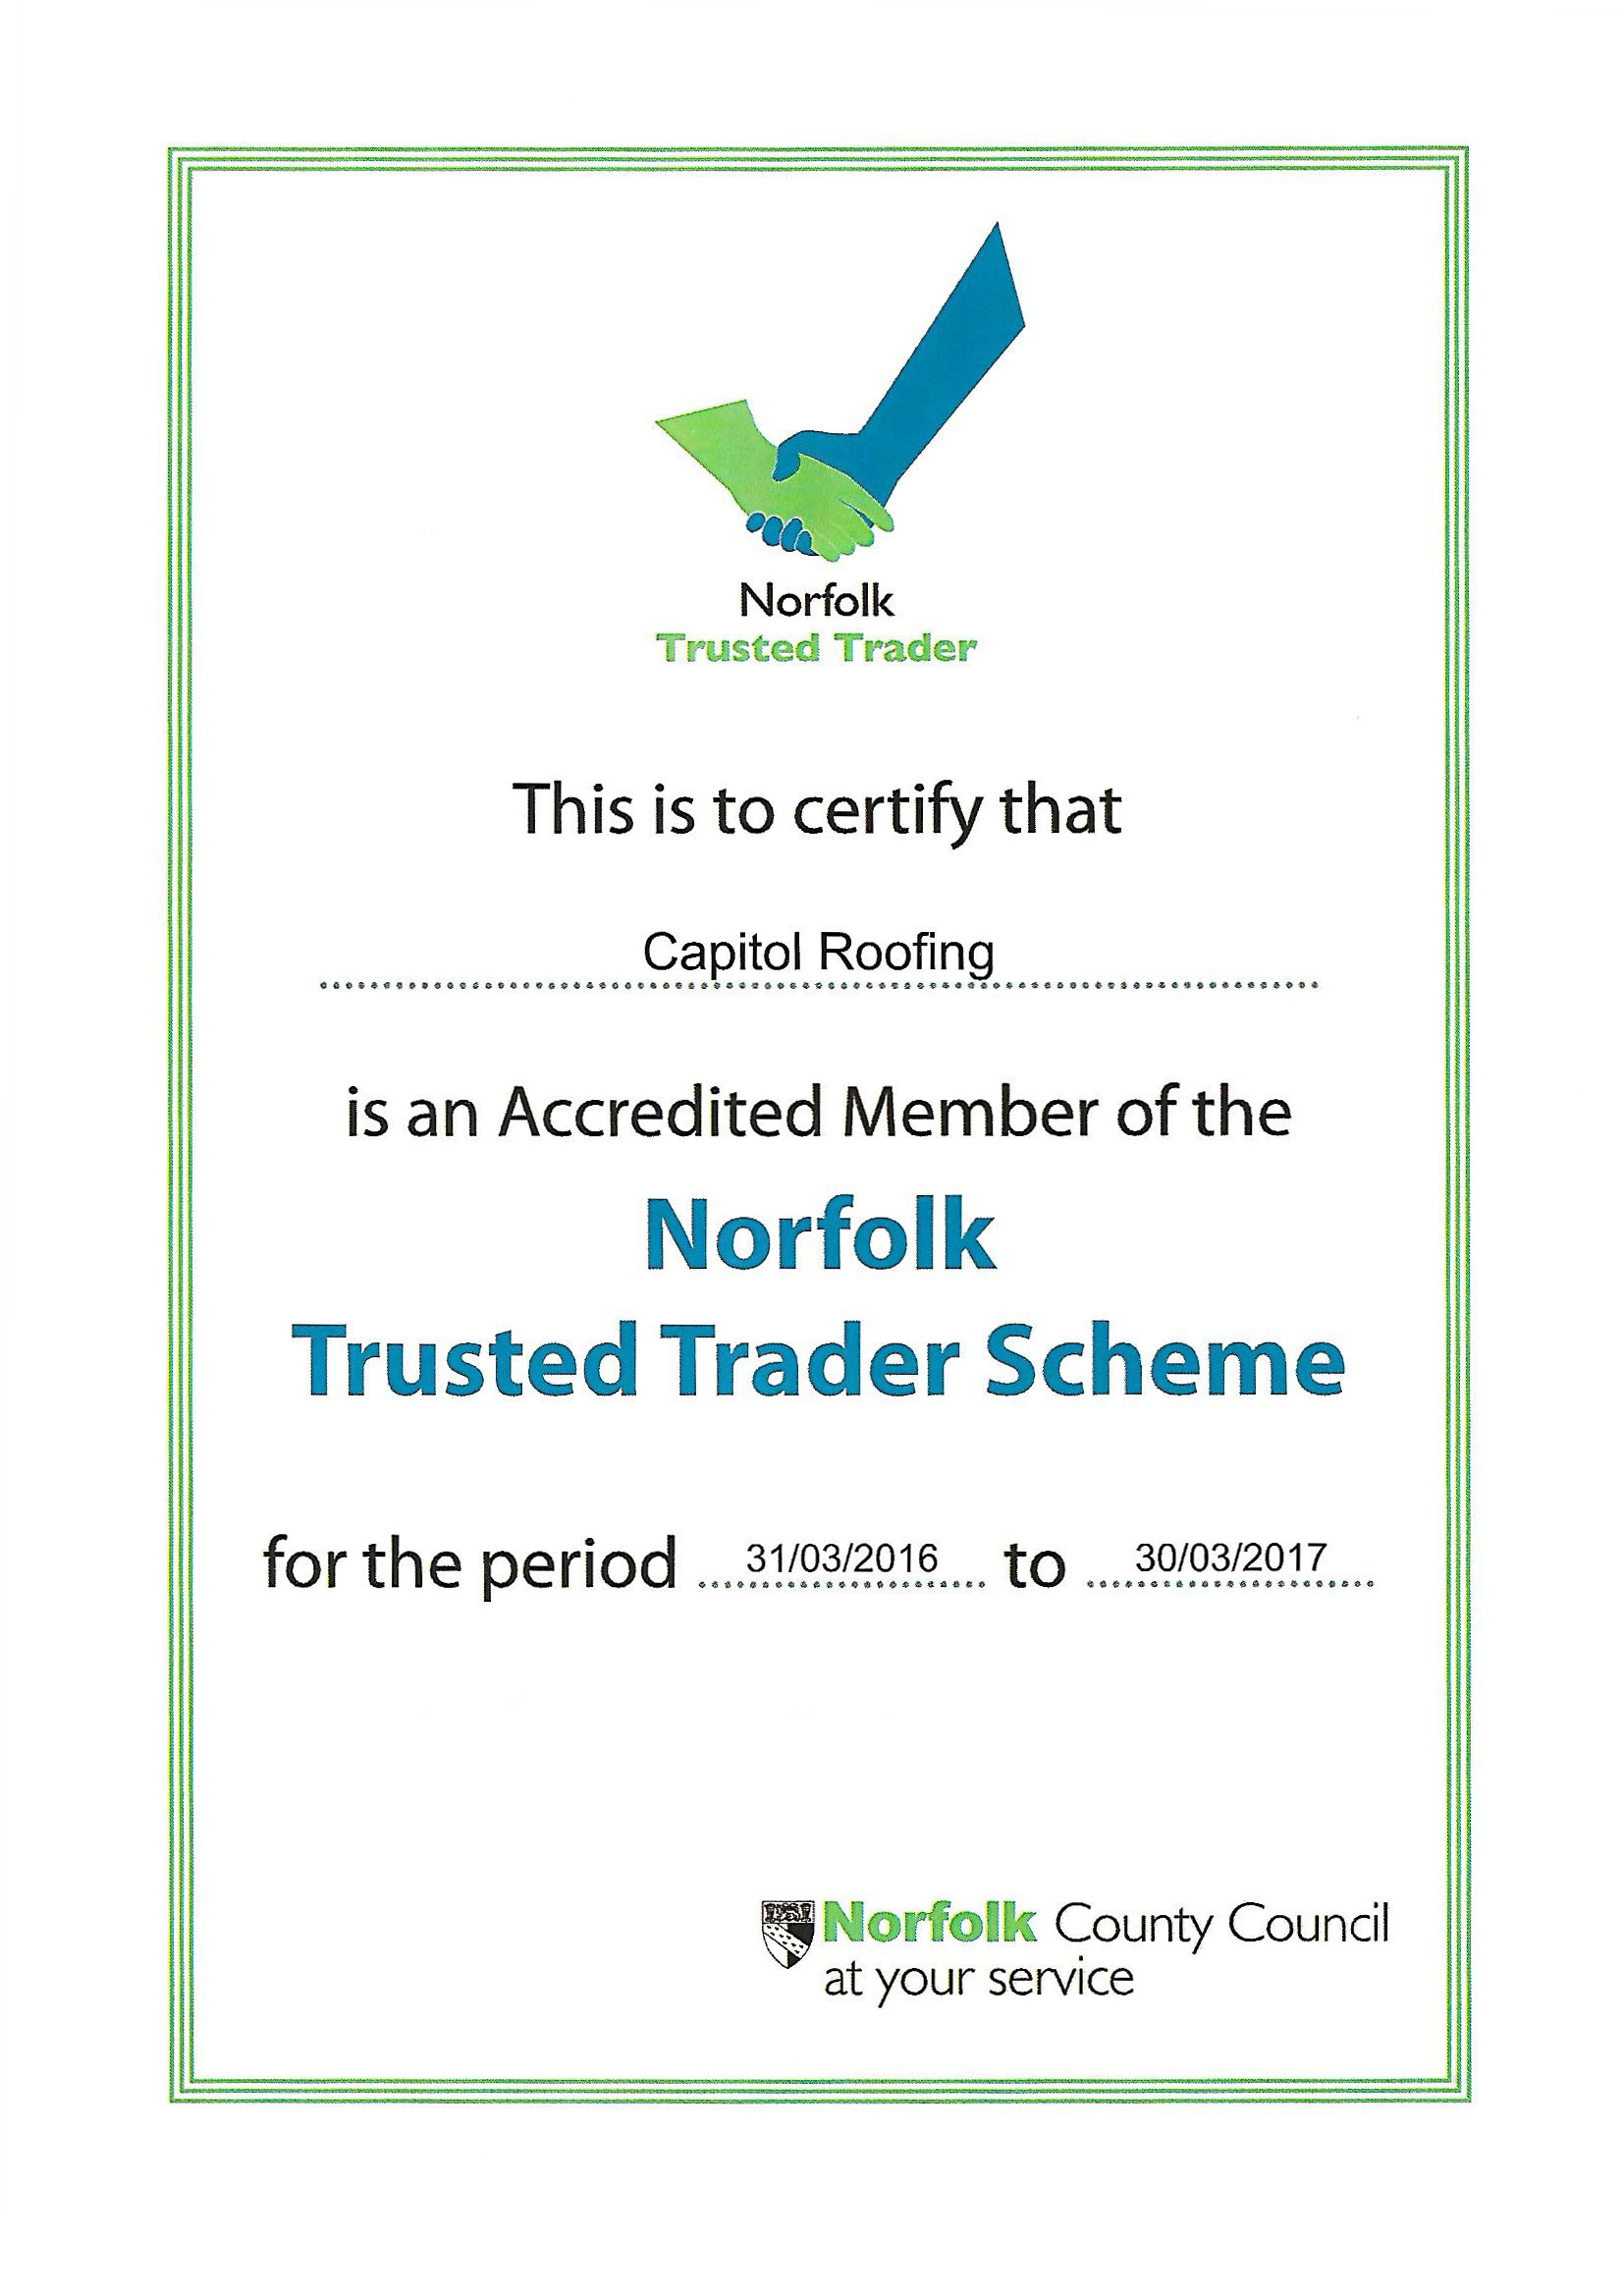 Trusted Trader Certificate